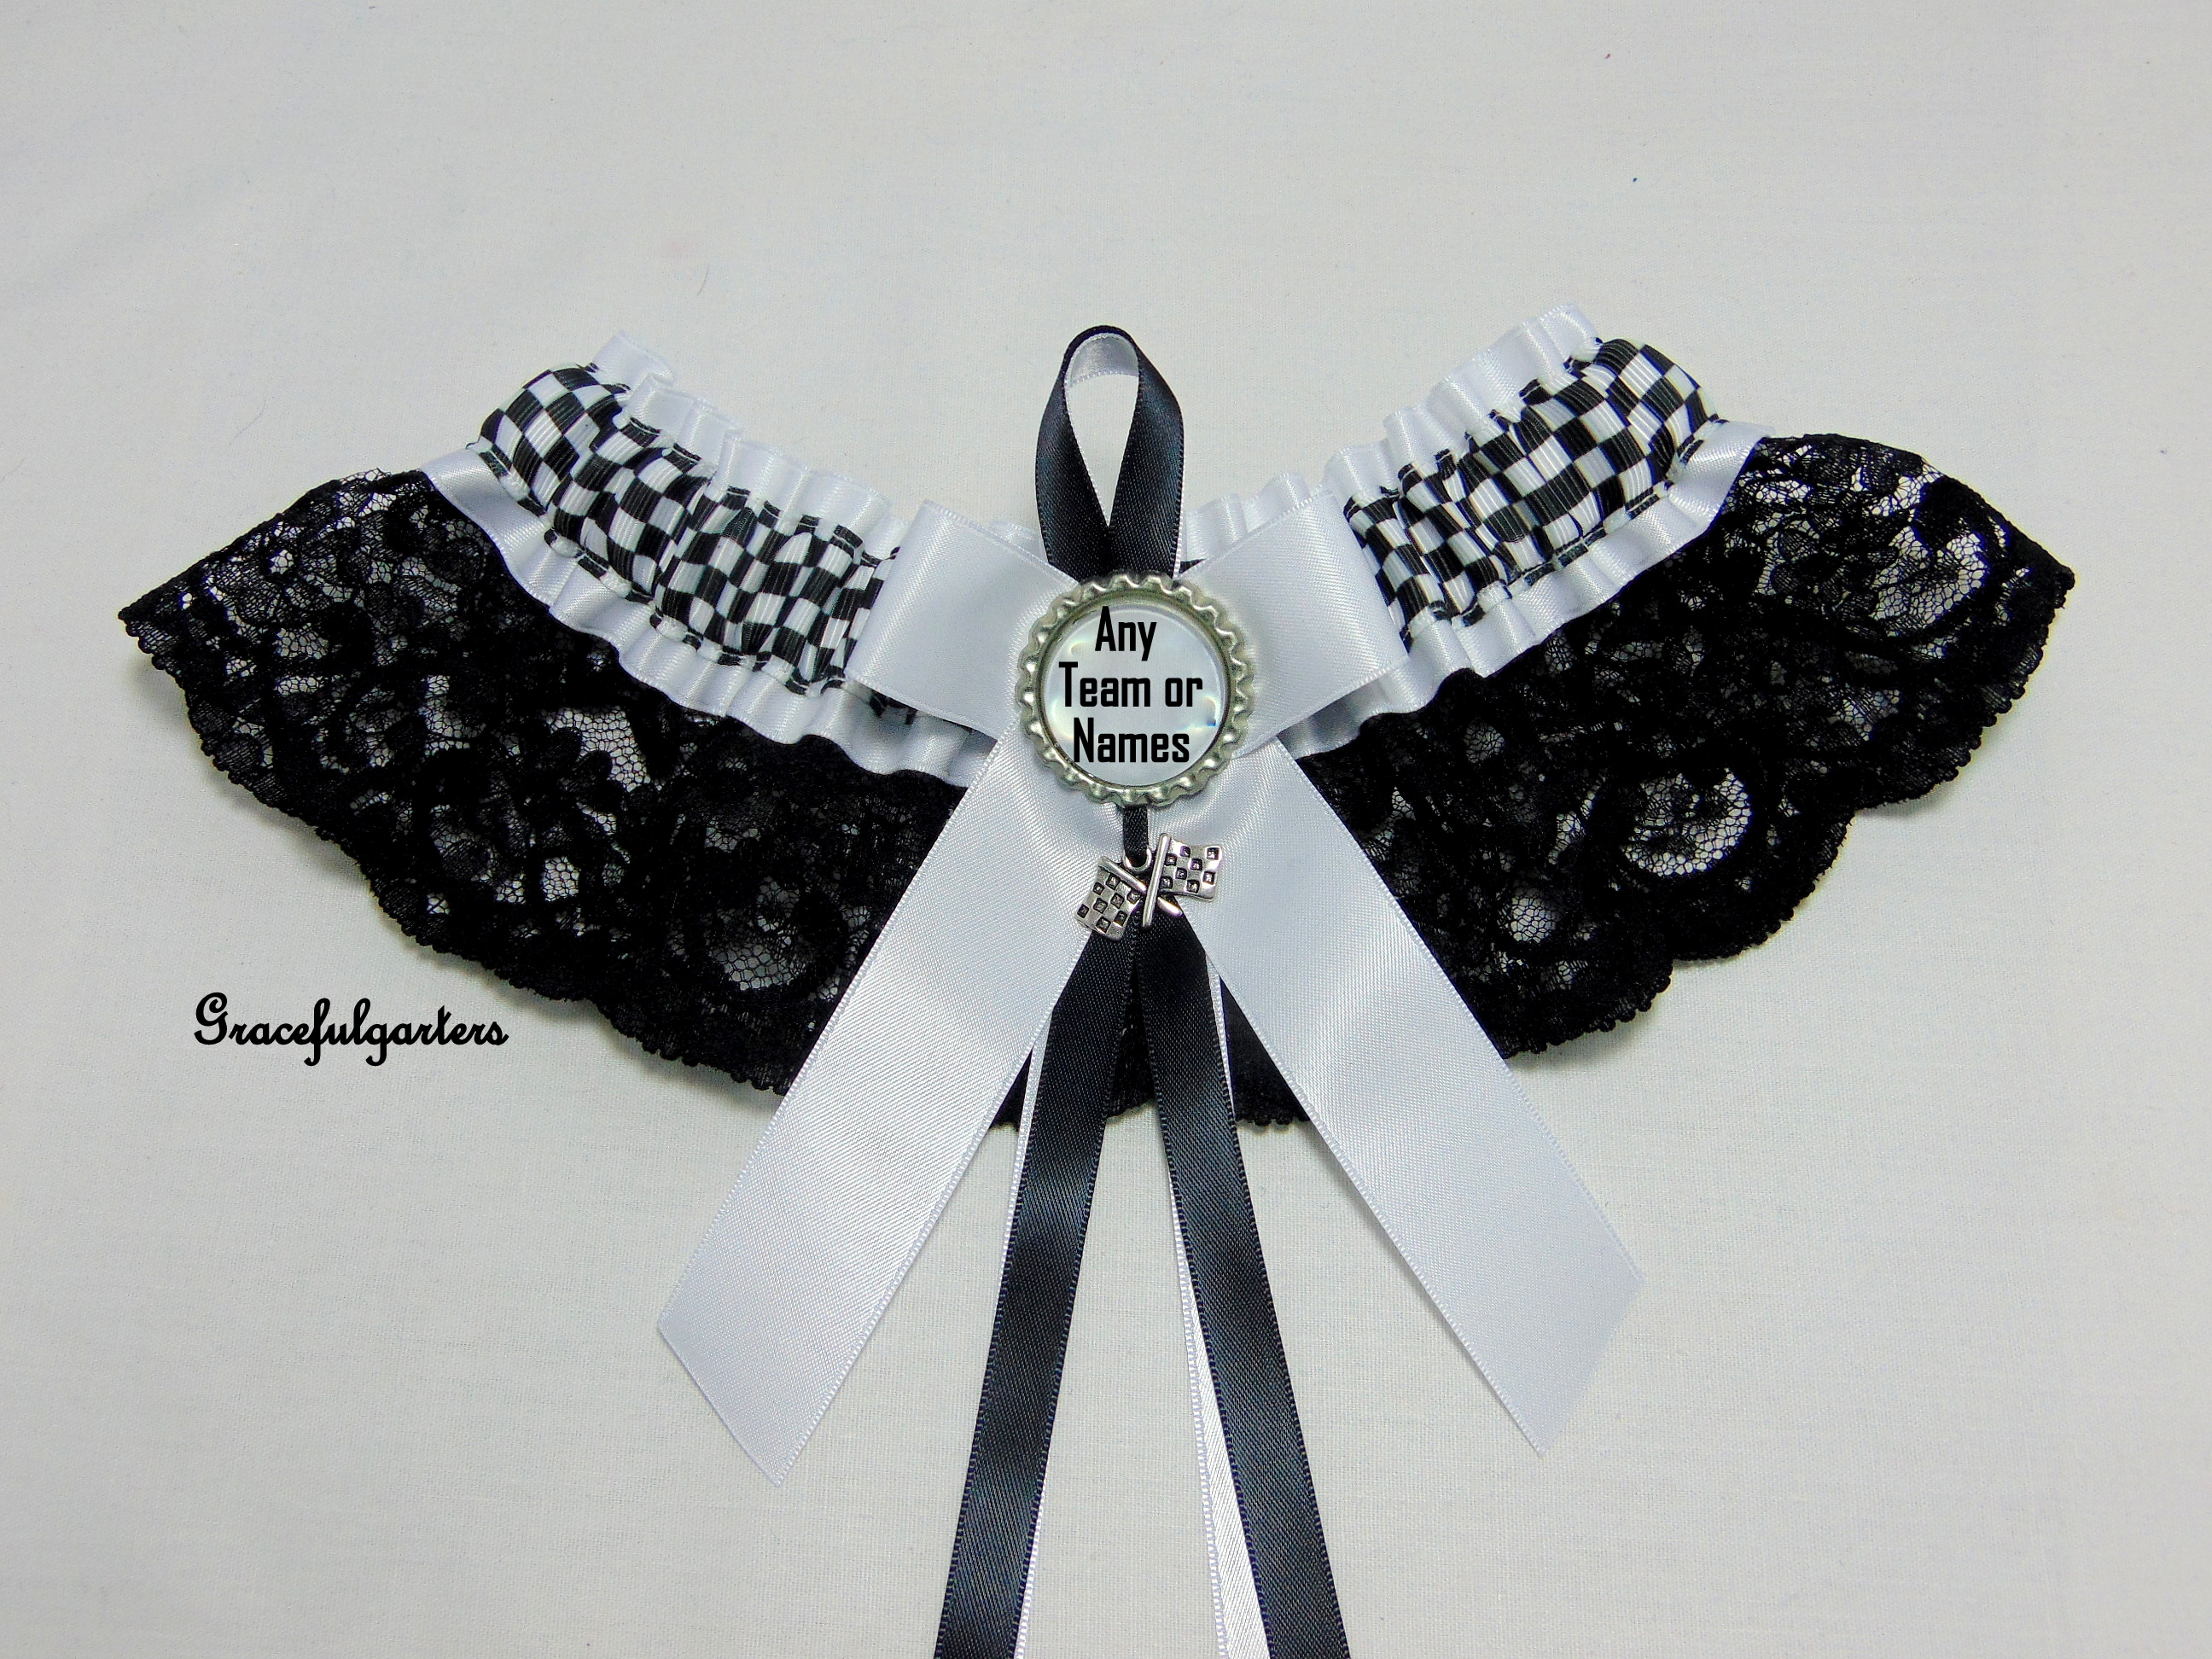 Checkered Flag Racing Team Or Names Lace Bridal Wedding Garter.